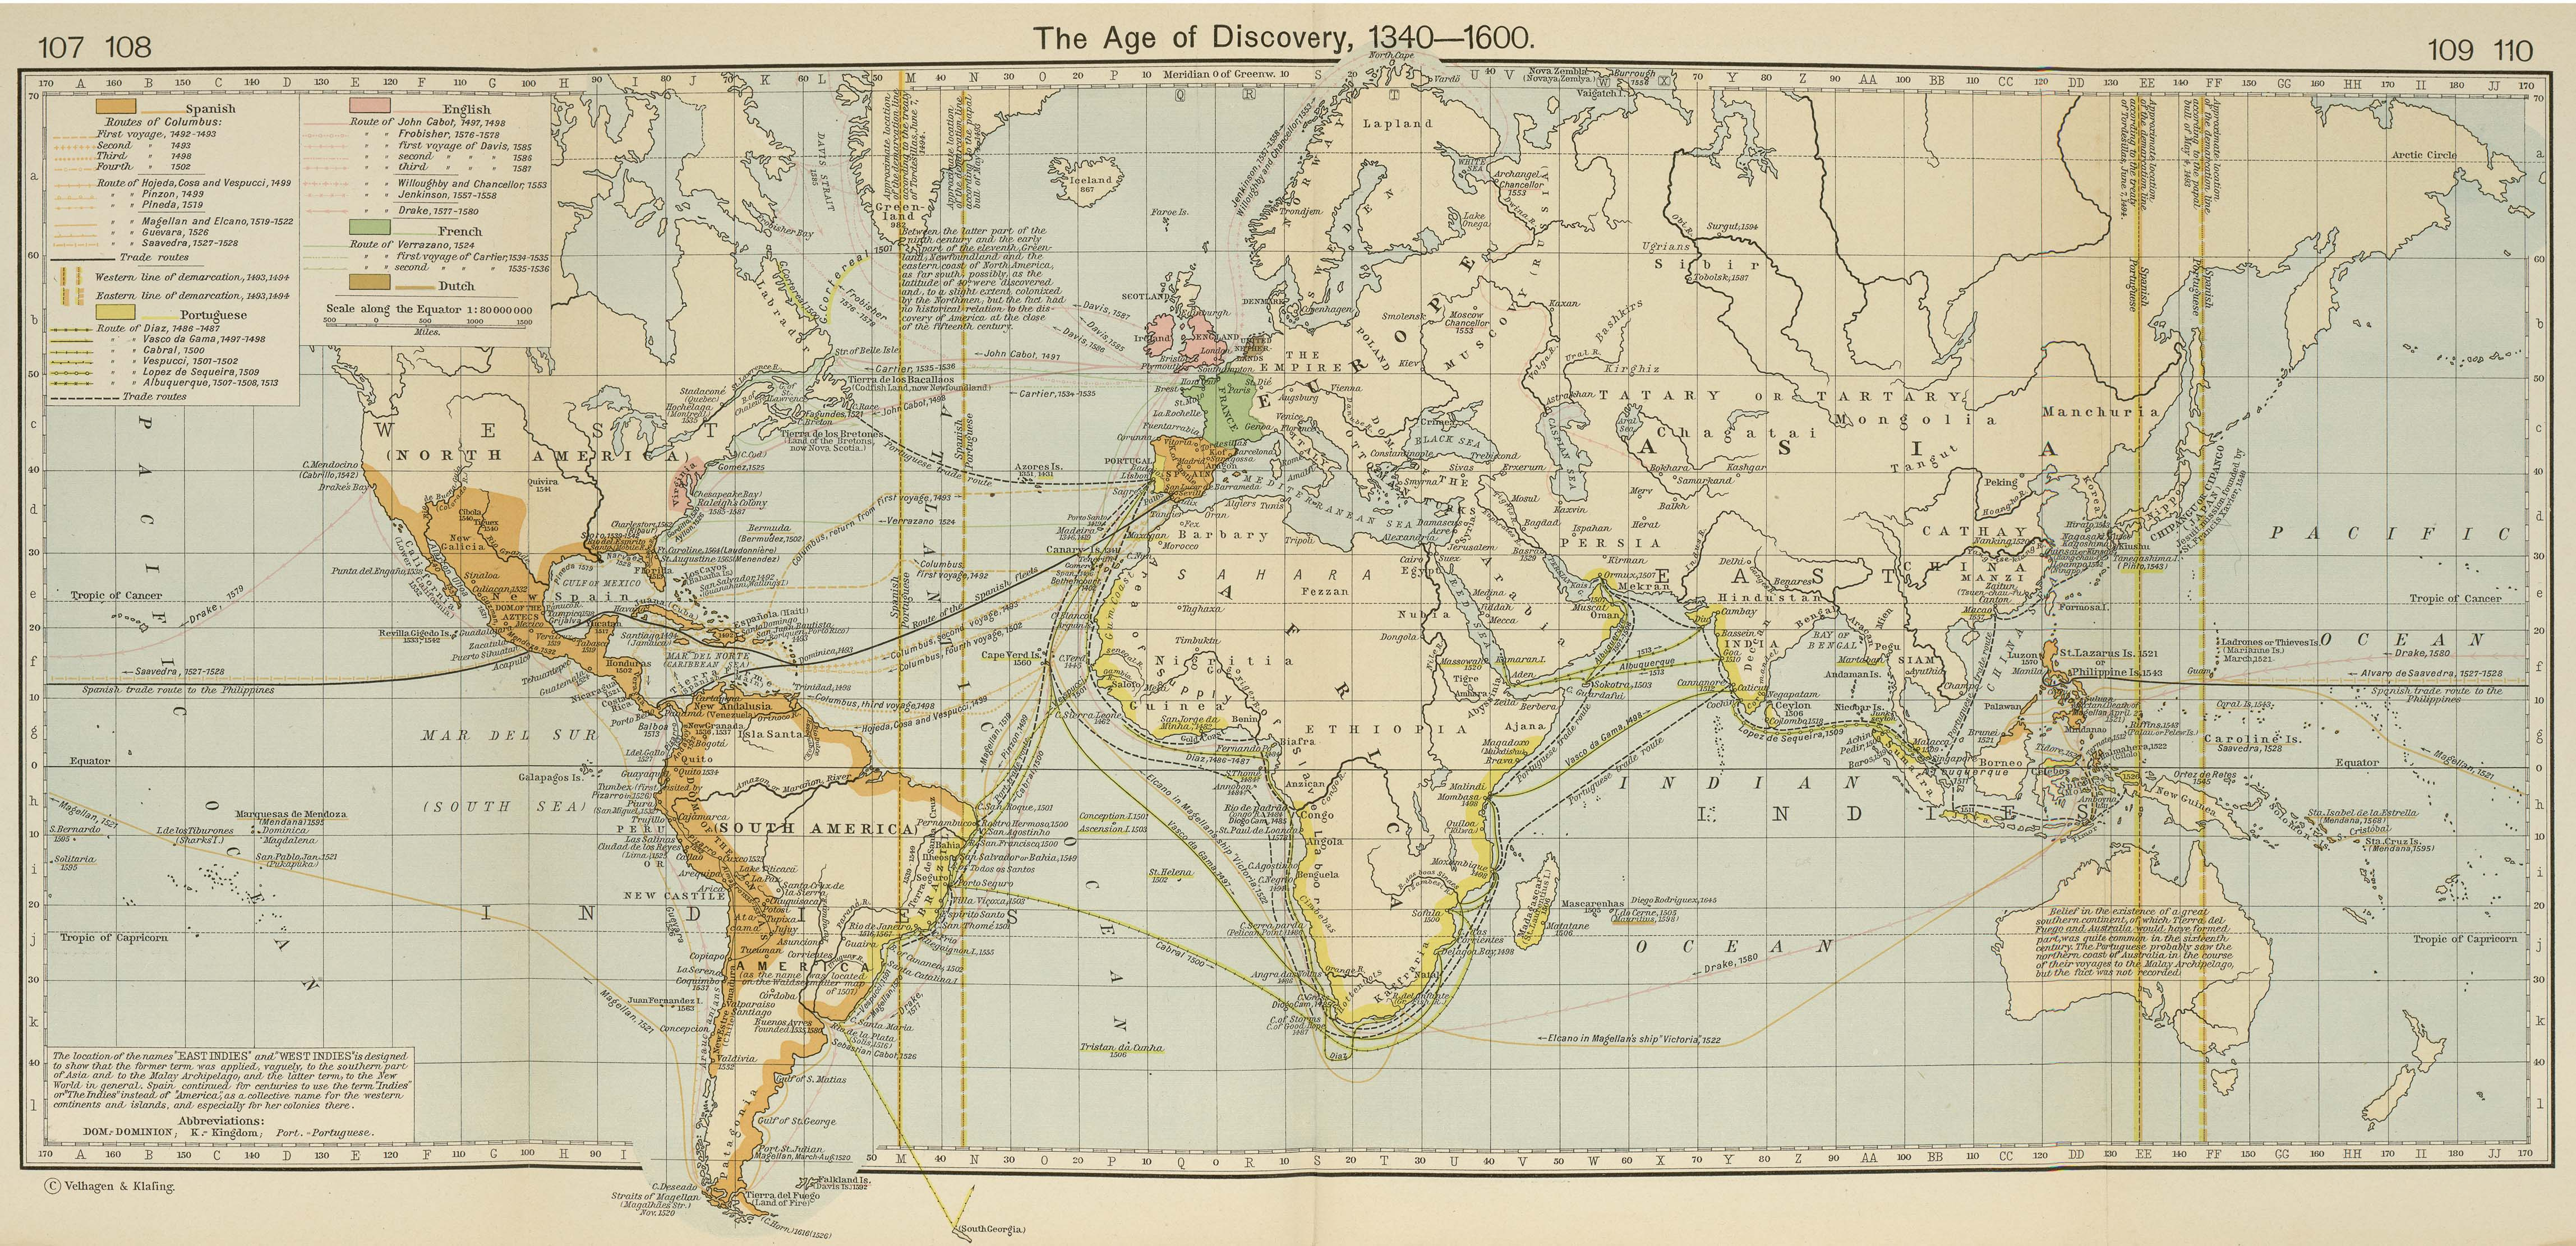 World historical maps perry castaeda map collection ut the age of discovery 1340 1600 gumiabroncs Gallery